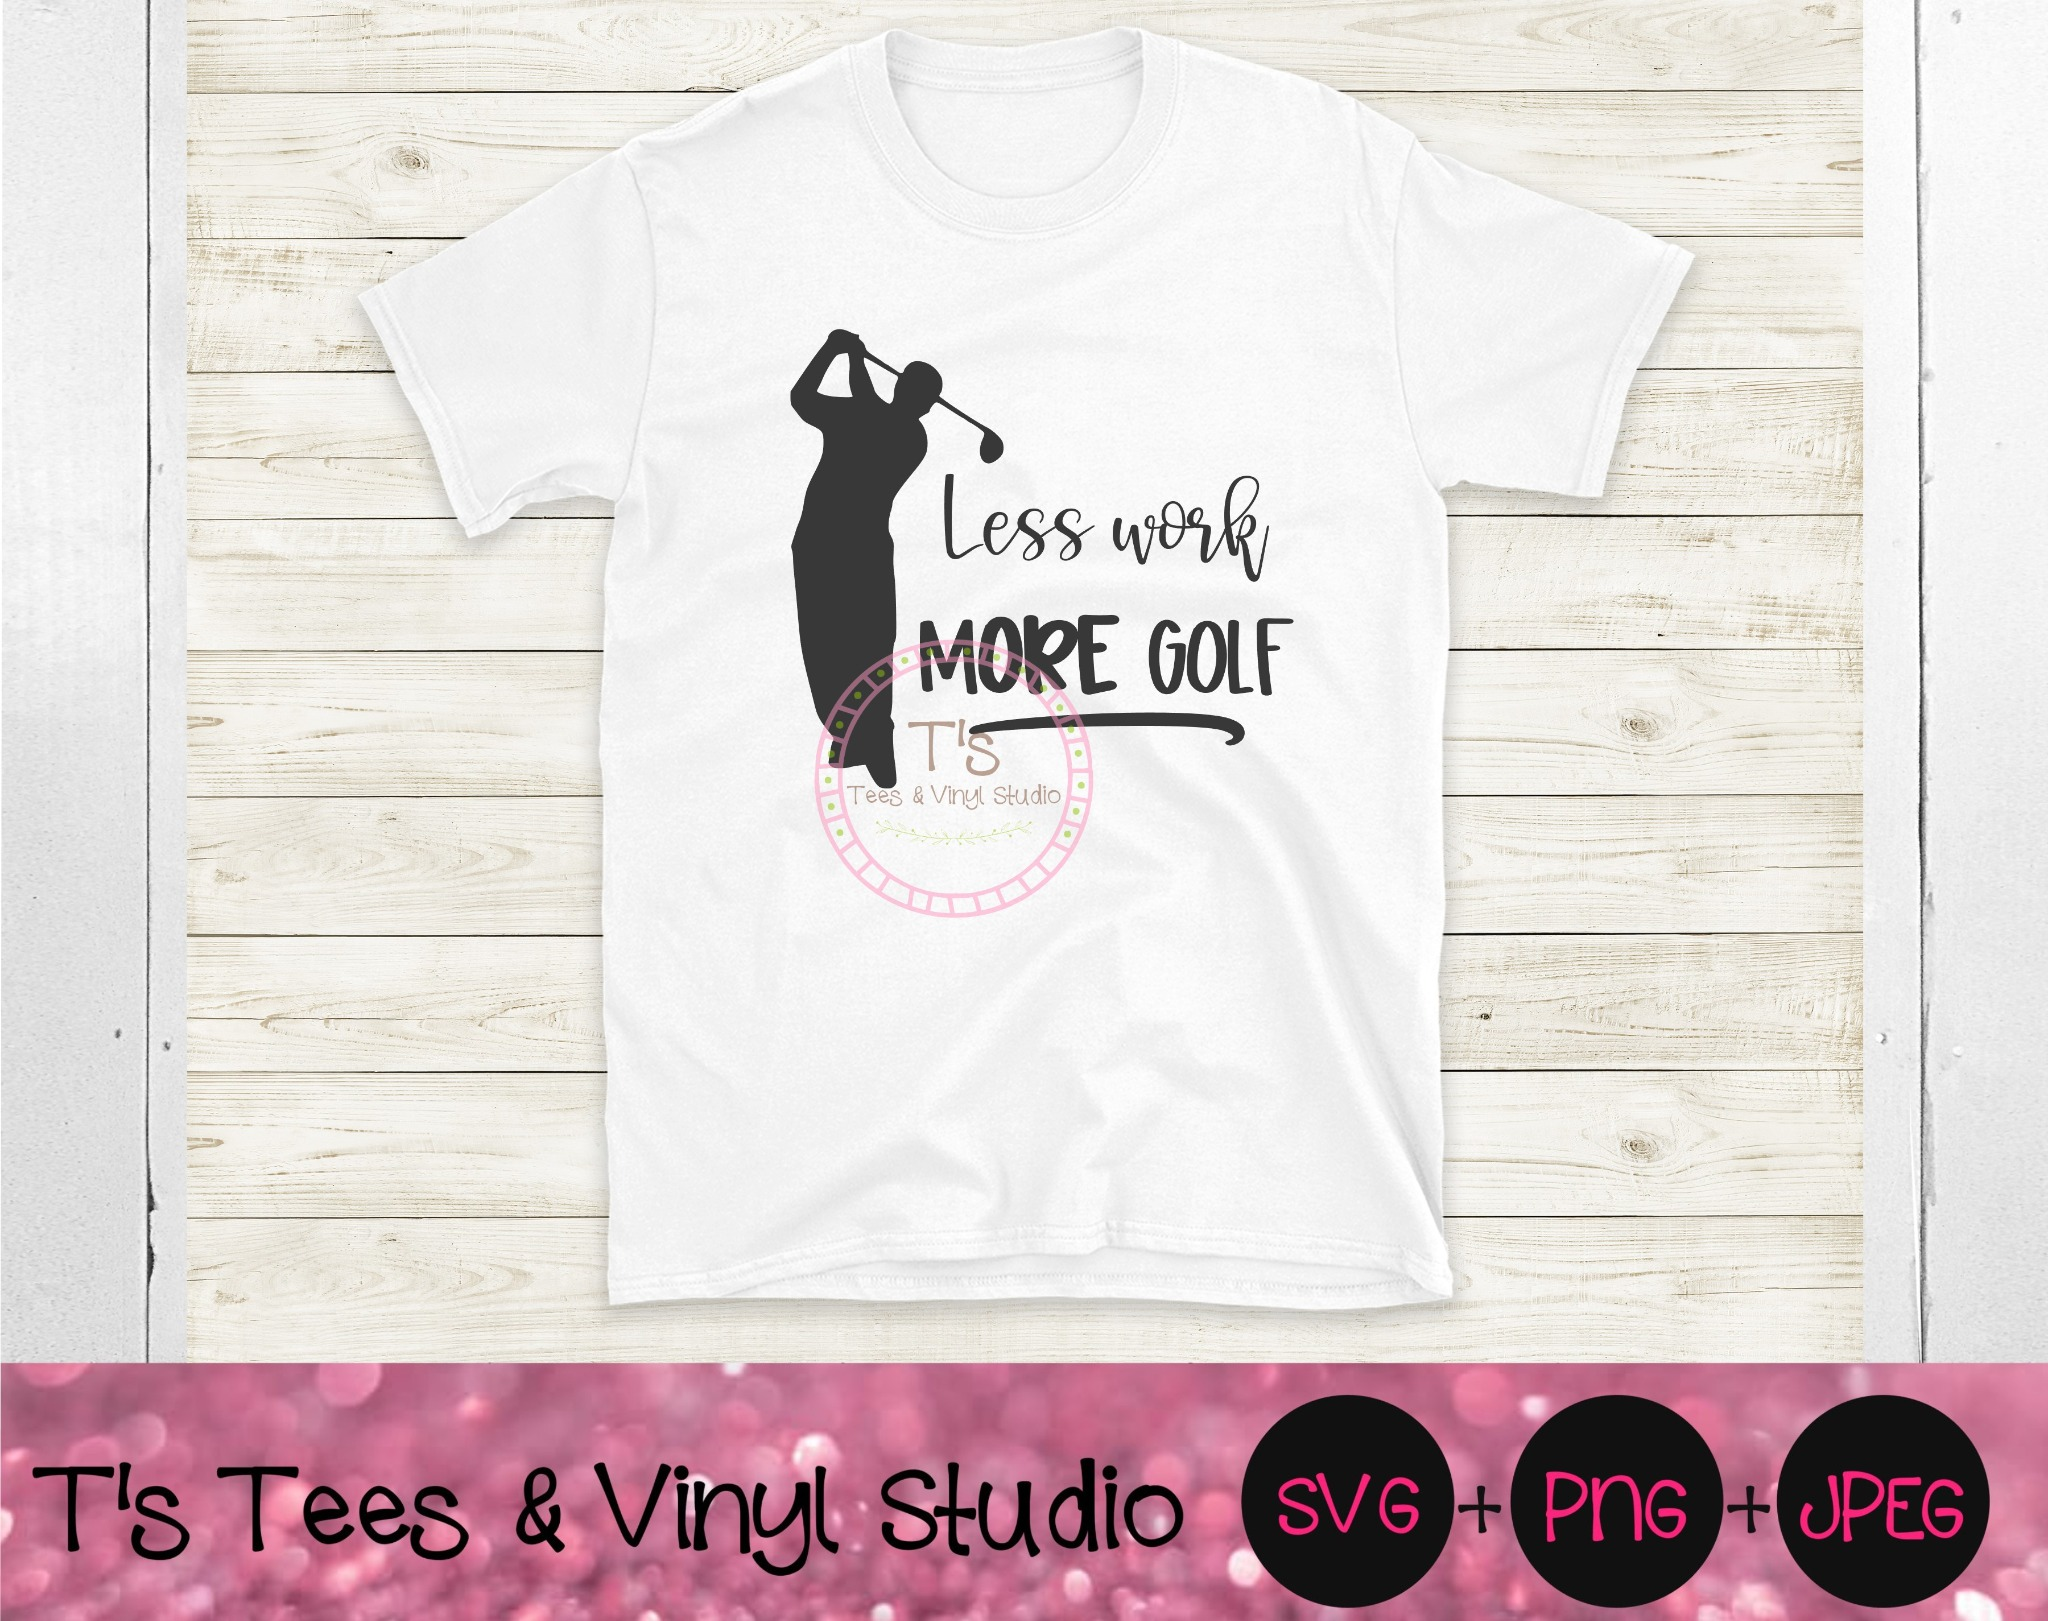 Less Work More Golf SVG, Love To Golf, Golfing, Father's Day, Dad, I'd Rather Be Golfing, Hobbies, S